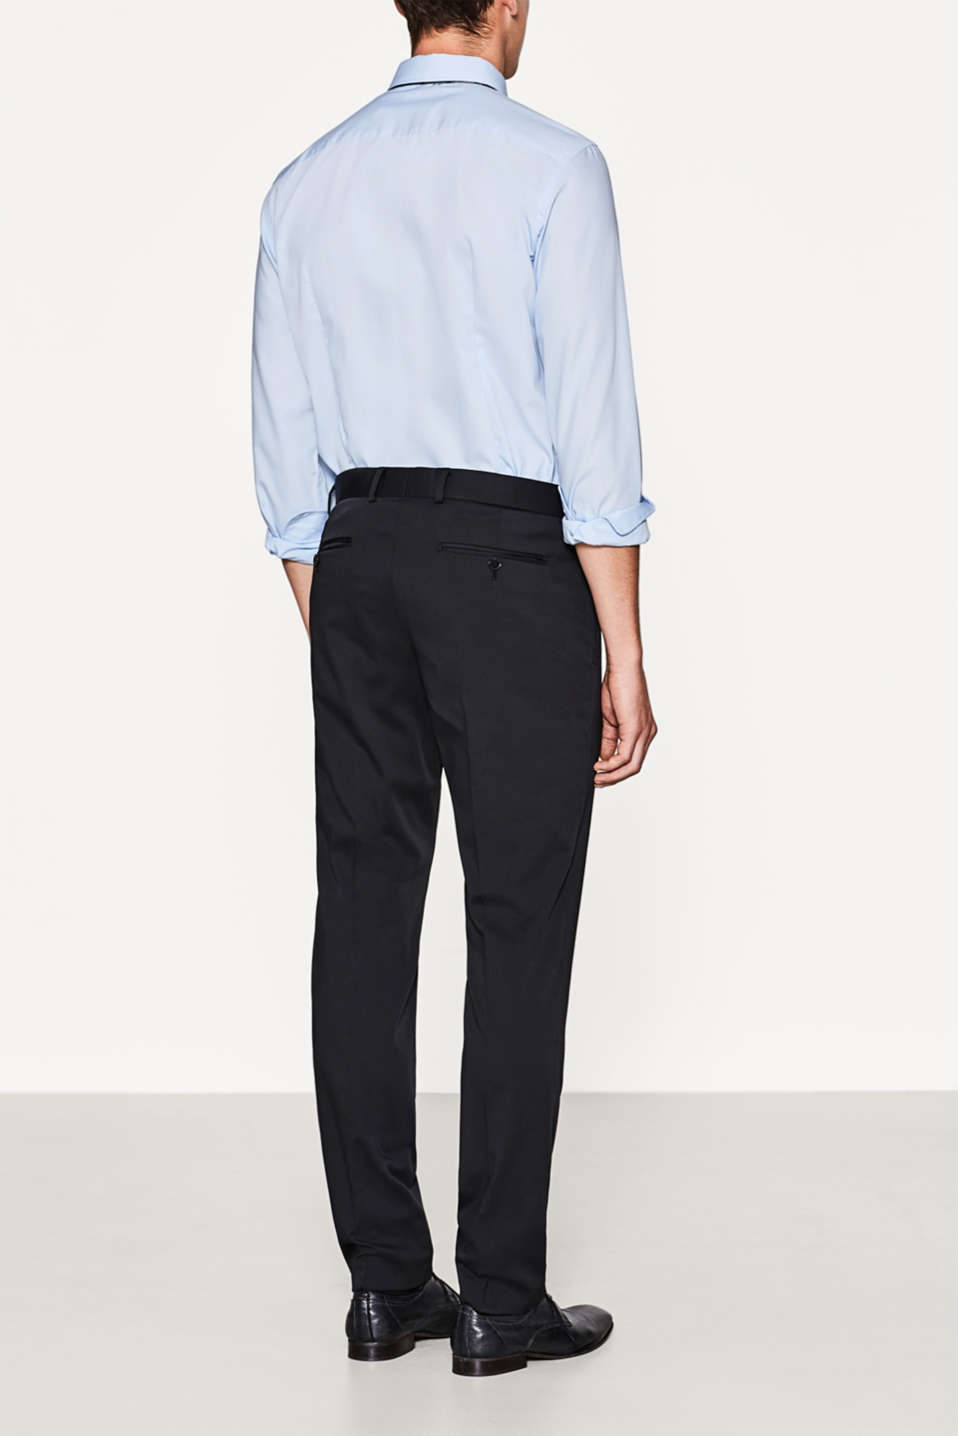 Classic suit trousers + stretch for comfort